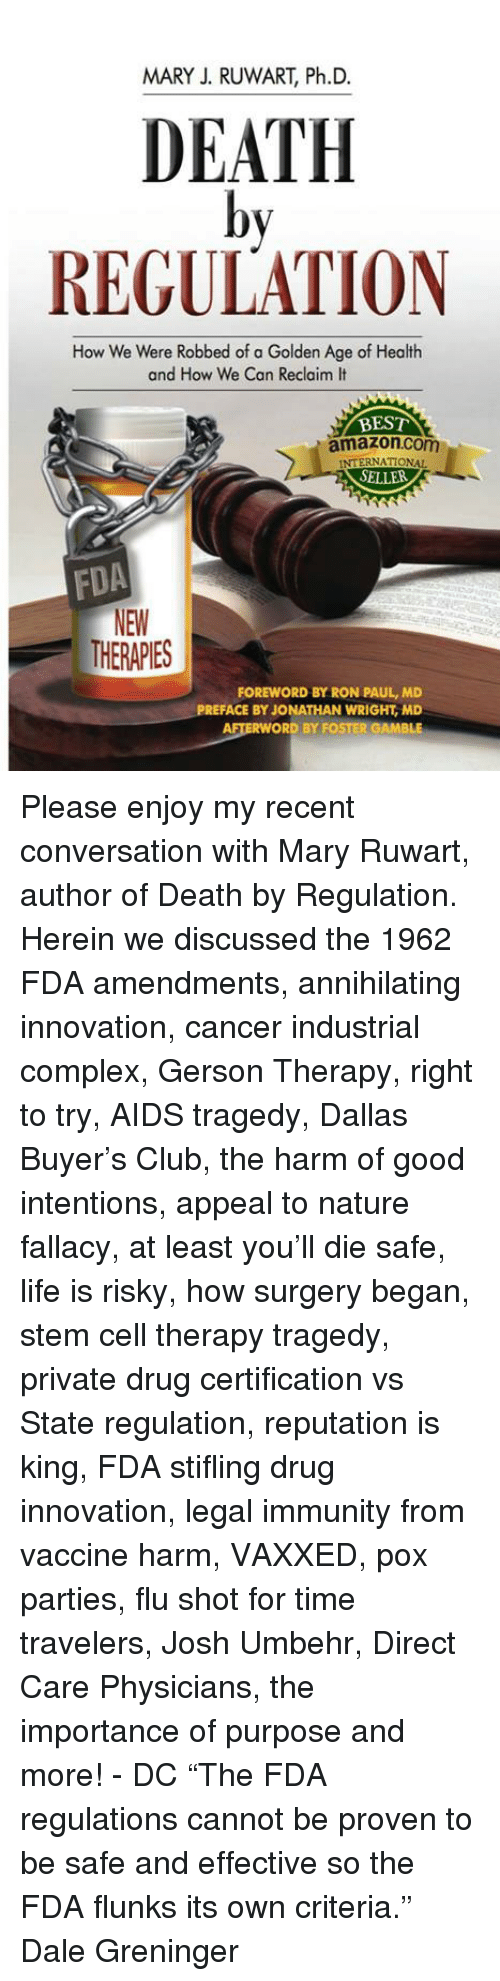 """Amazon, Club, and Complex: MARY J. RUWART, Ph.D.  DEATH  by  REGULATION  How We Were Robbed of a Golden Age of Health  and How We Can Reclaim It  BEST  amazon.com  INTERNATIONAL  SELLER  NEW  THERAPIES  FOREWORD BY RON PAUL, MD  PREFACE BY JONATHAN WRIGHT, MD Please enjoy my recent conversation with Mary Ruwart, author of Death by Regulation. Herein we discussed the 1962 FDA amendments, annihilating innovation, cancer industrial complex, Gerson Therapy, right to try, AIDS tragedy, Dallas Buyer's Club, the harm of good intentions, appeal to nature fallacy, at least you'll die safe, life is risky, how surgery began, stem cell therapy tragedy, private drug certification vs State regulation, reputation is king, FDA stifling drug innovation, legal immunity from vaccine harm, VAXXED, pox parties, flu shot for time travelers, Josh Umbehr, Direct Care Physicians, the importance of purpose and more! - DC  """"The FDA regulations cannot be proven to be safe and effective so the FDA flunks its own criteria."""" Dale Greninger"""